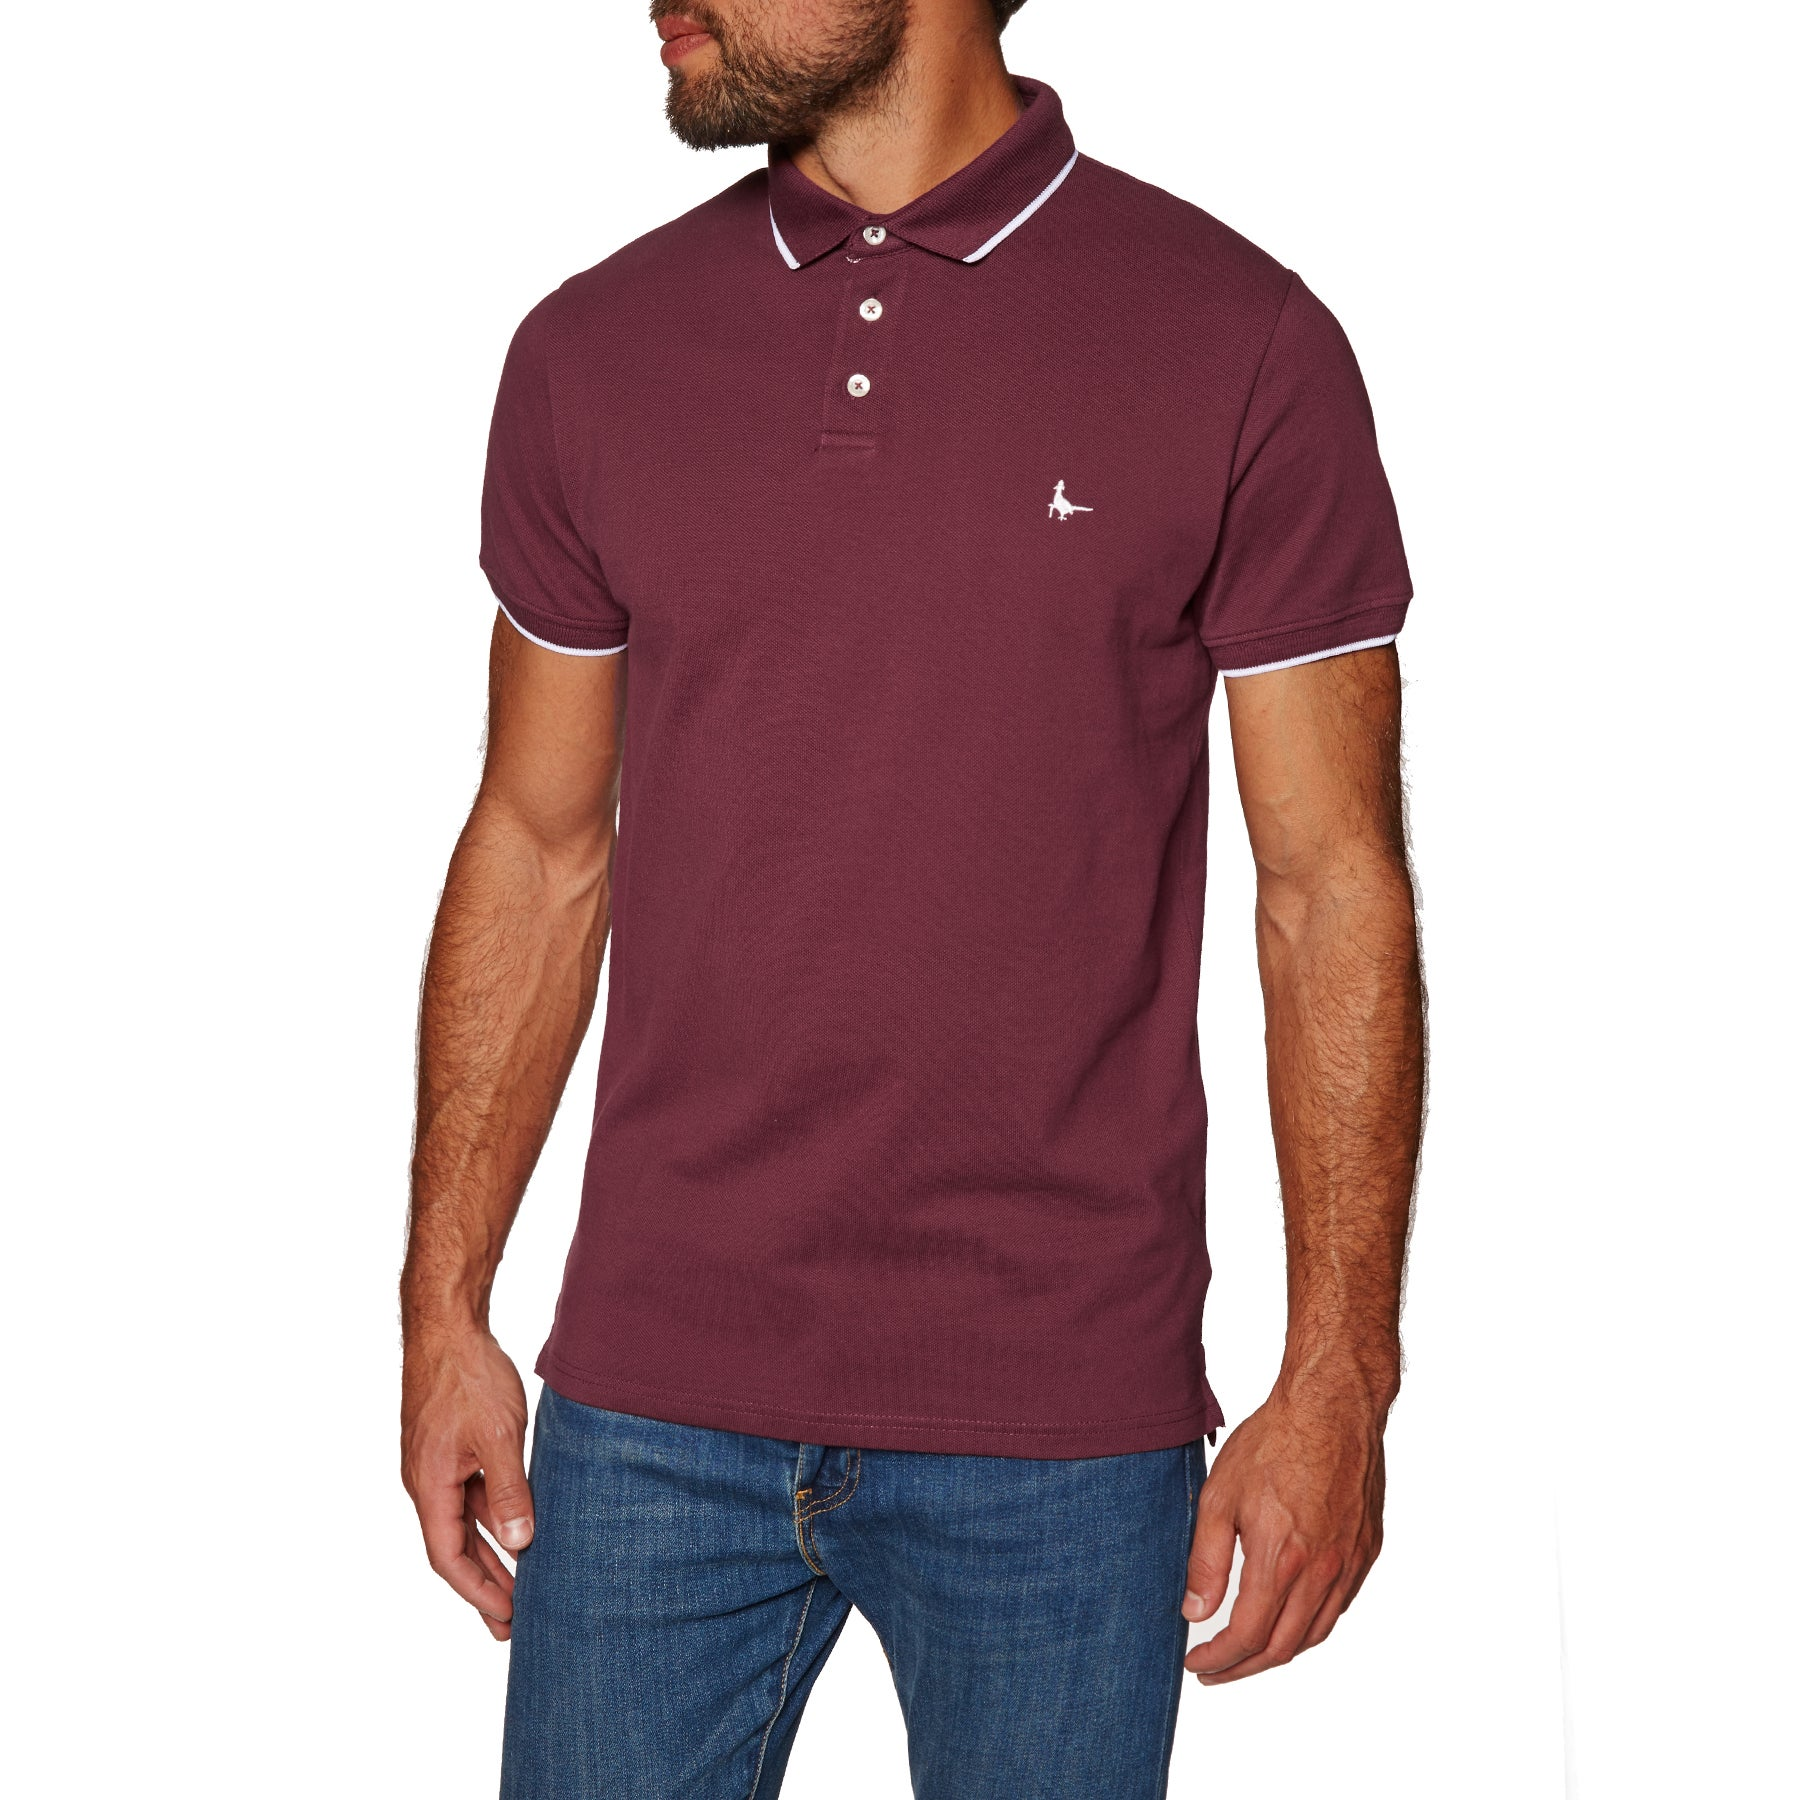 Jack Wills Edgeware Tipped Polo Shirt - Damson